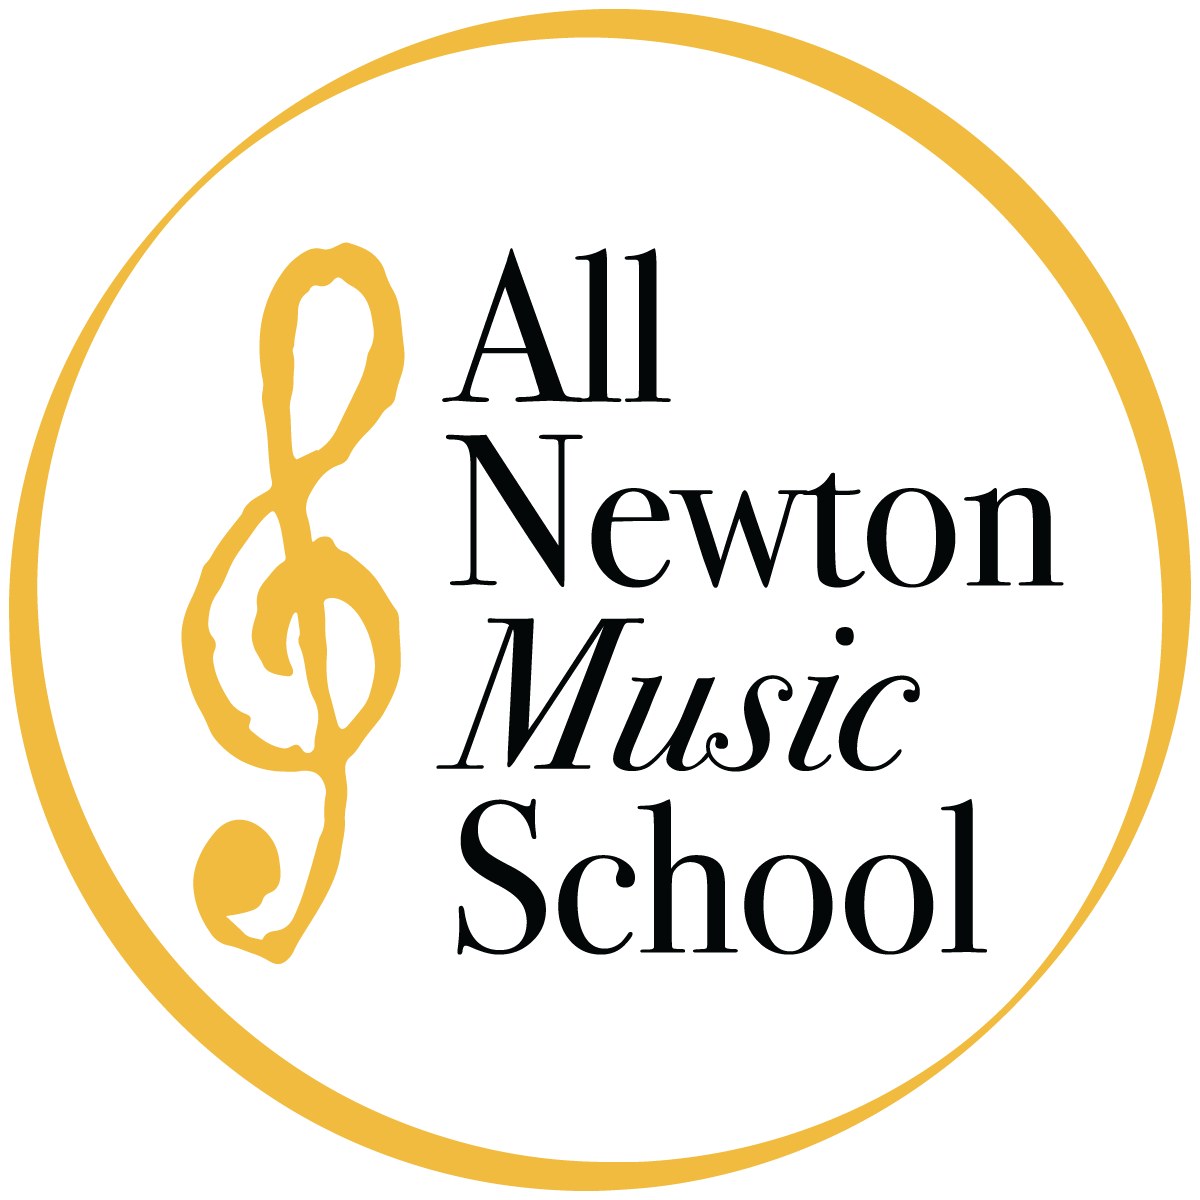 All Newton Music School